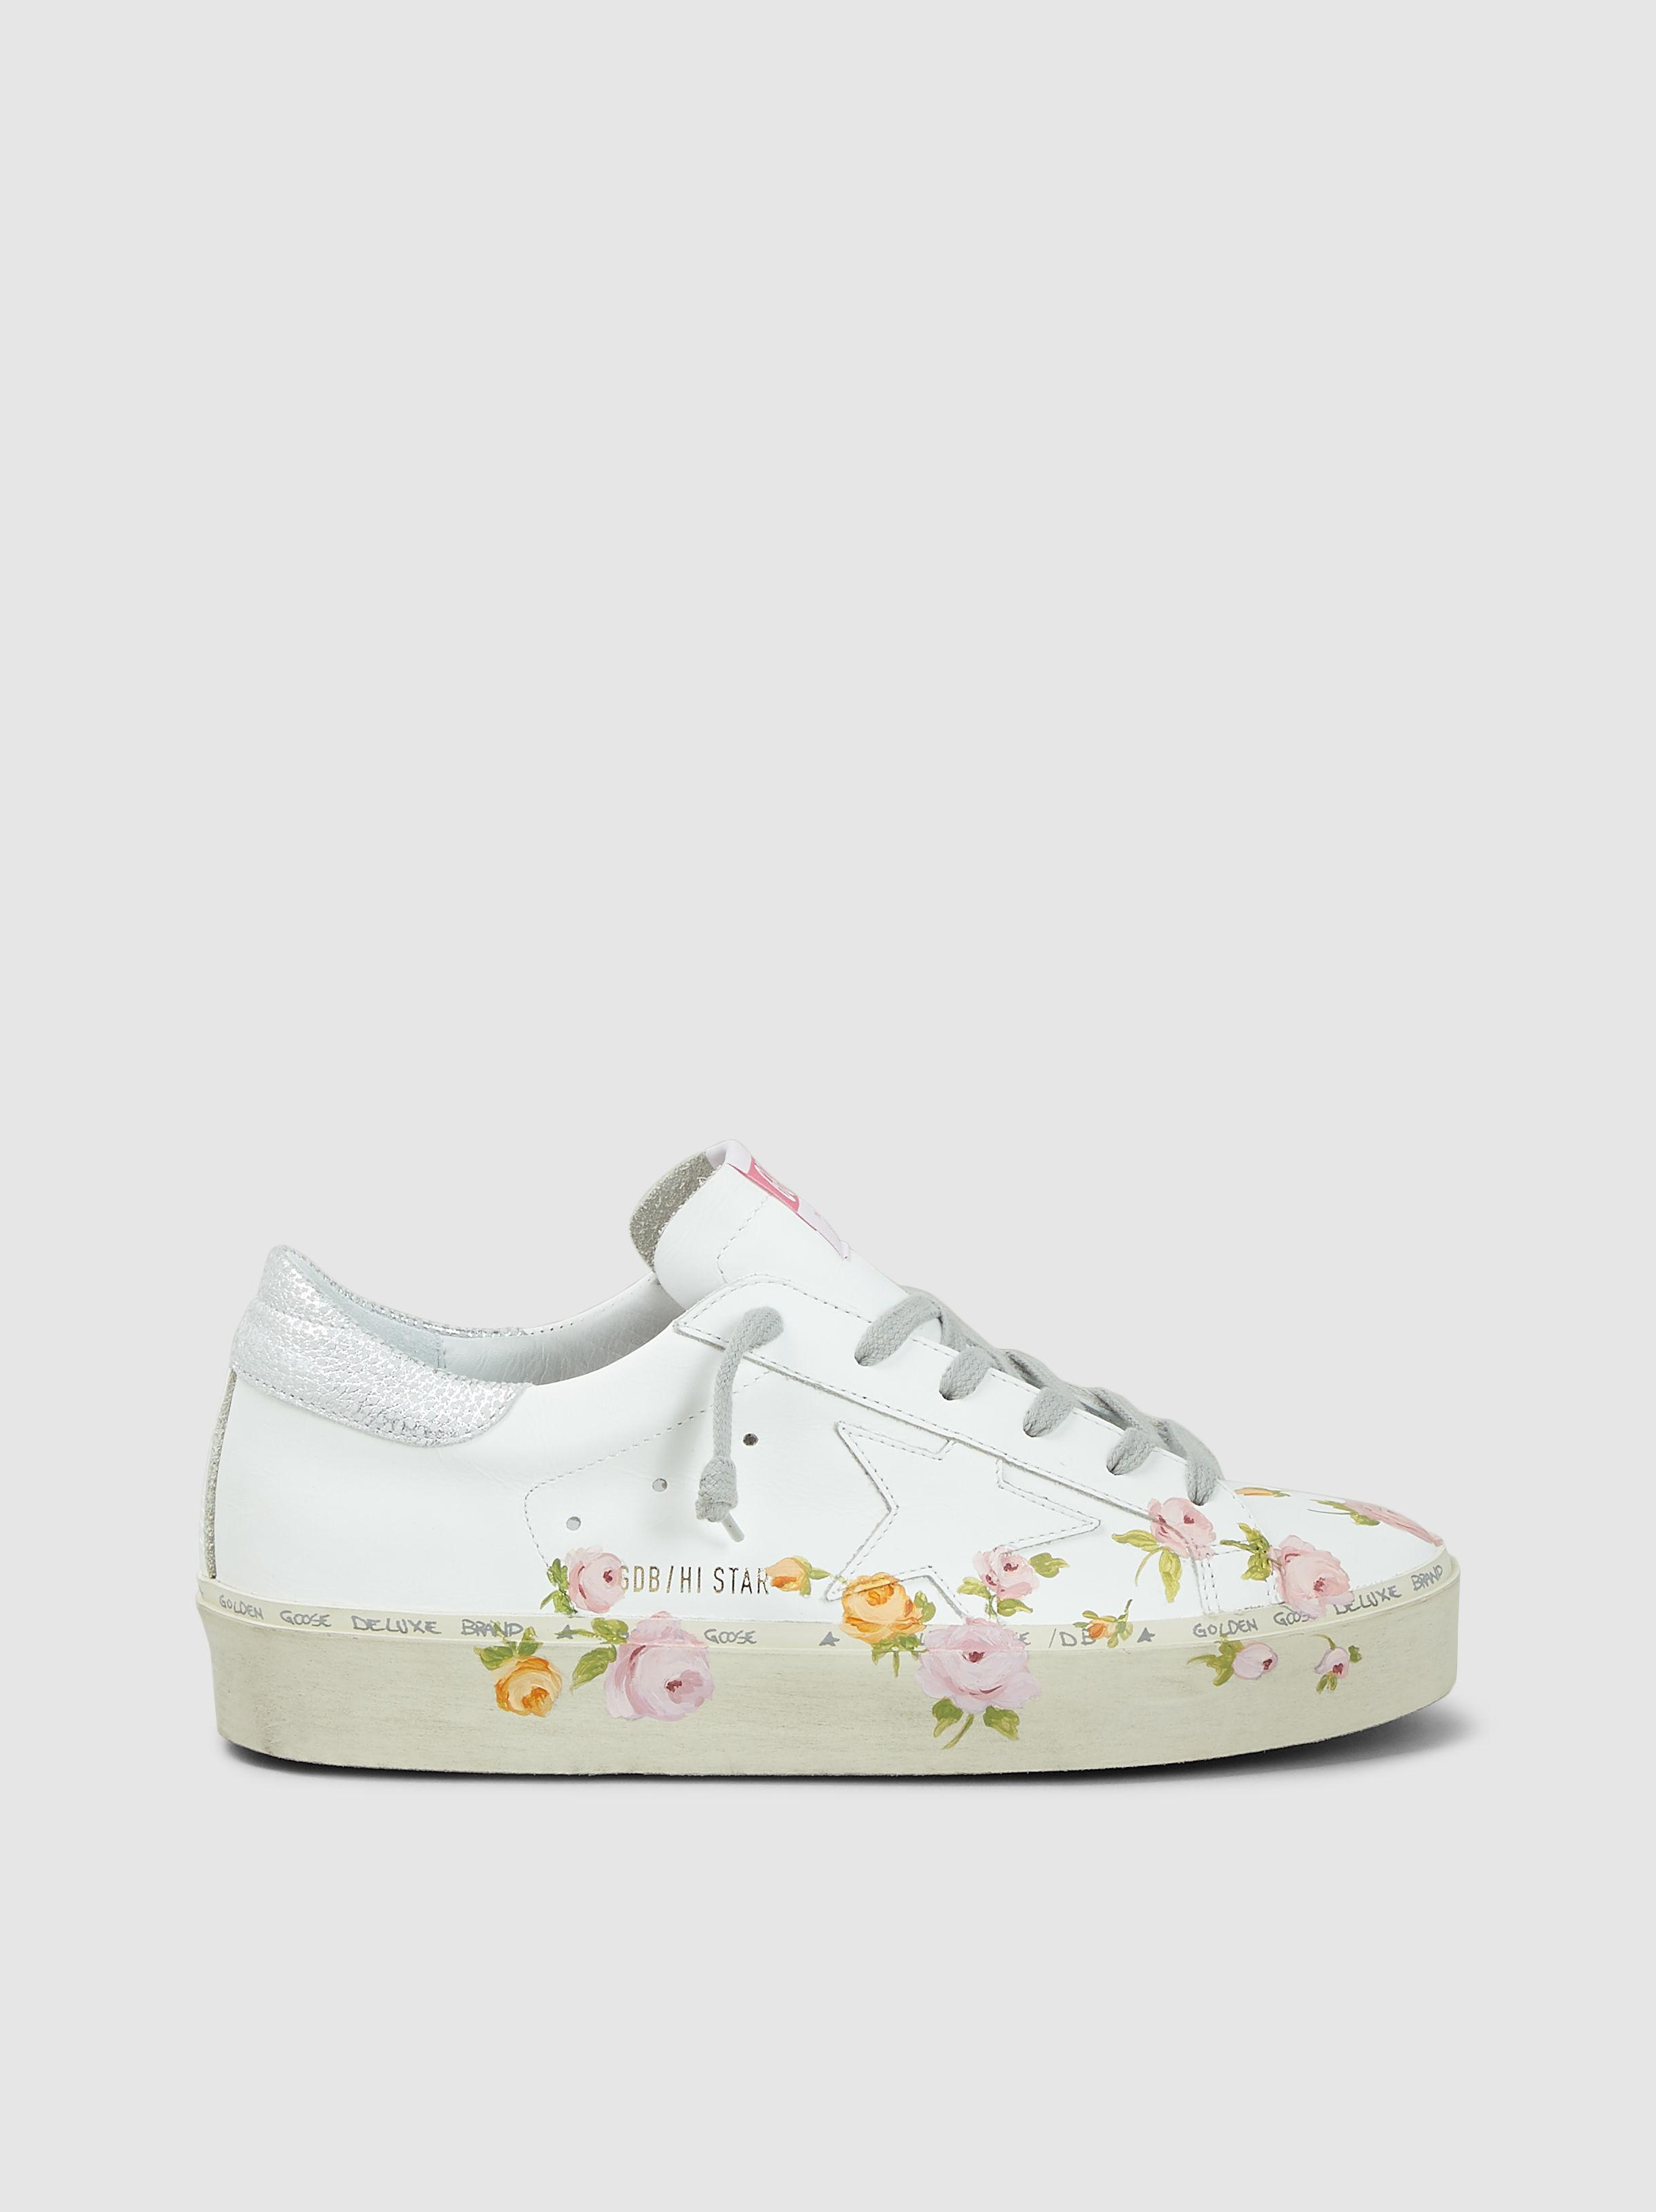 7820e27a4d2db Golden Goose Deluxe Brand. Women s White Floral Print High-star Sneakers